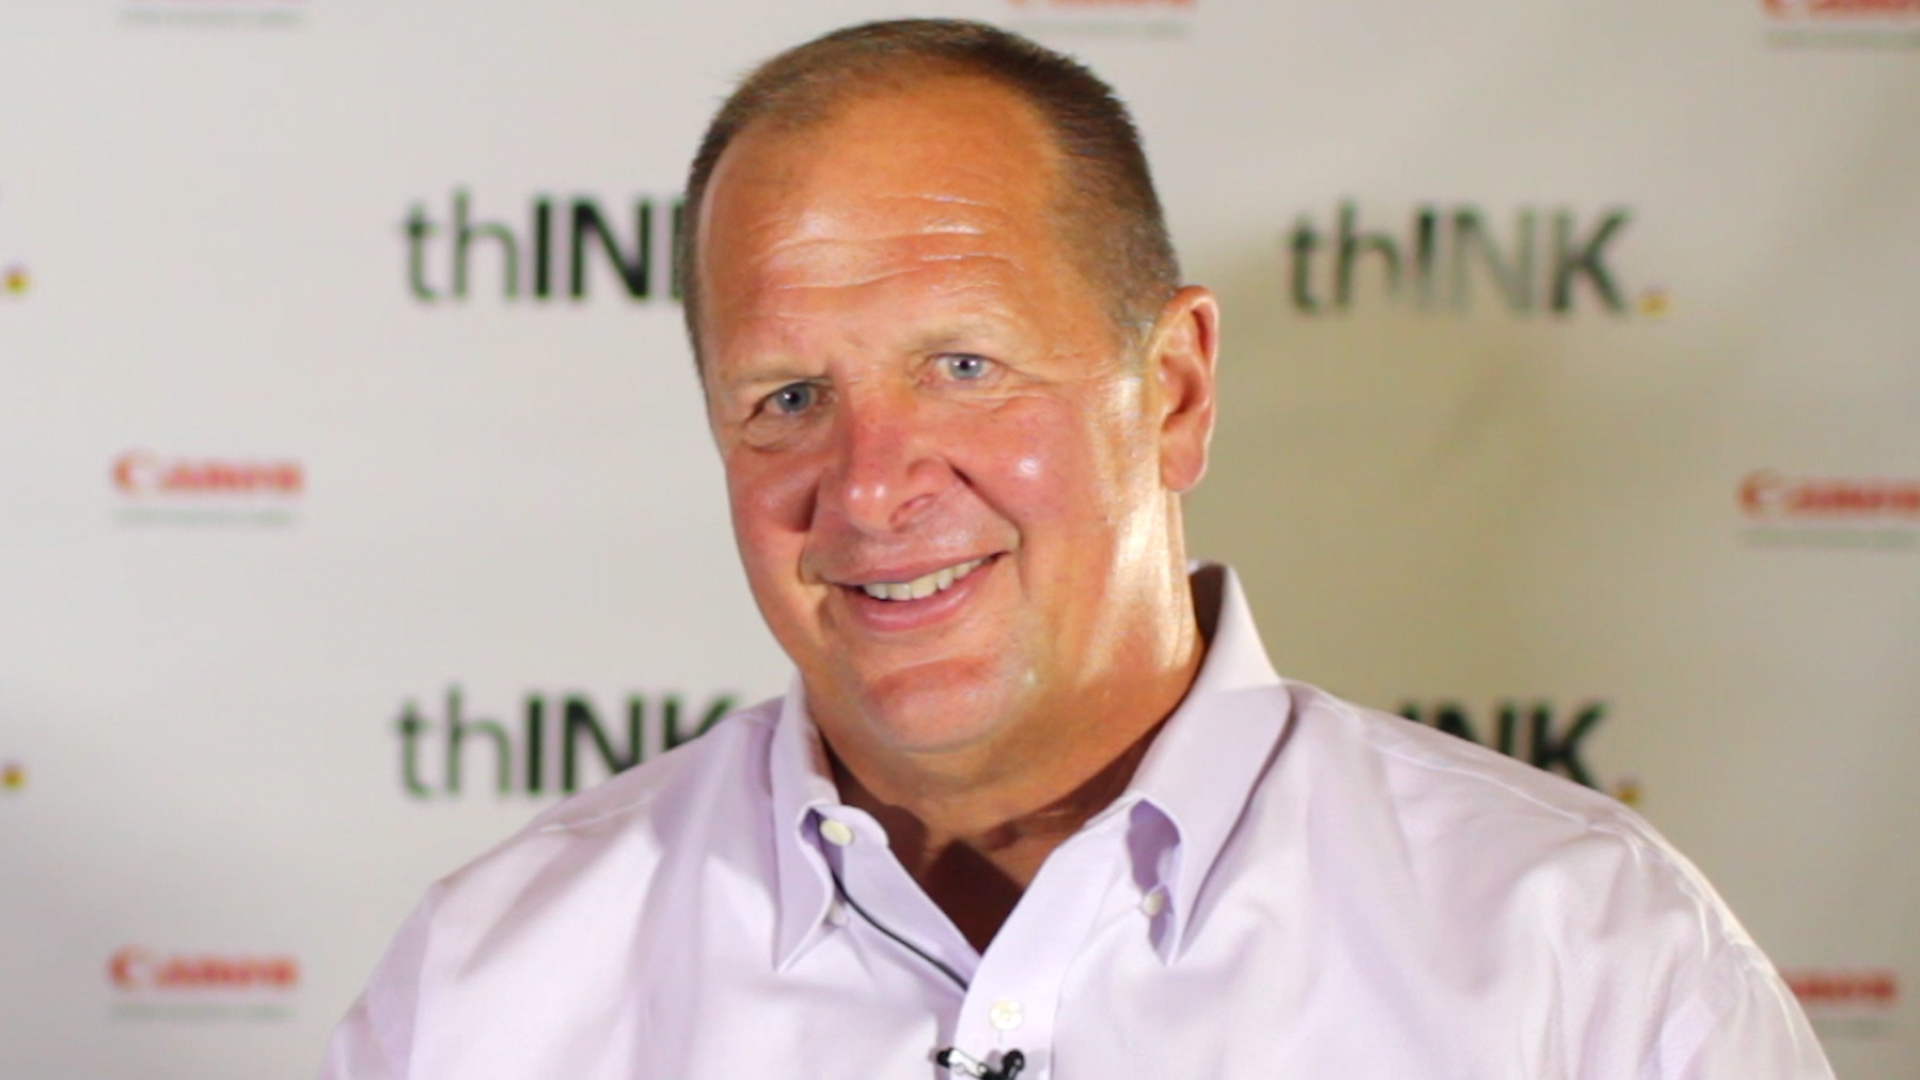 Video preview: The Past, Present, and Future of thINK and Inkjet Technologies